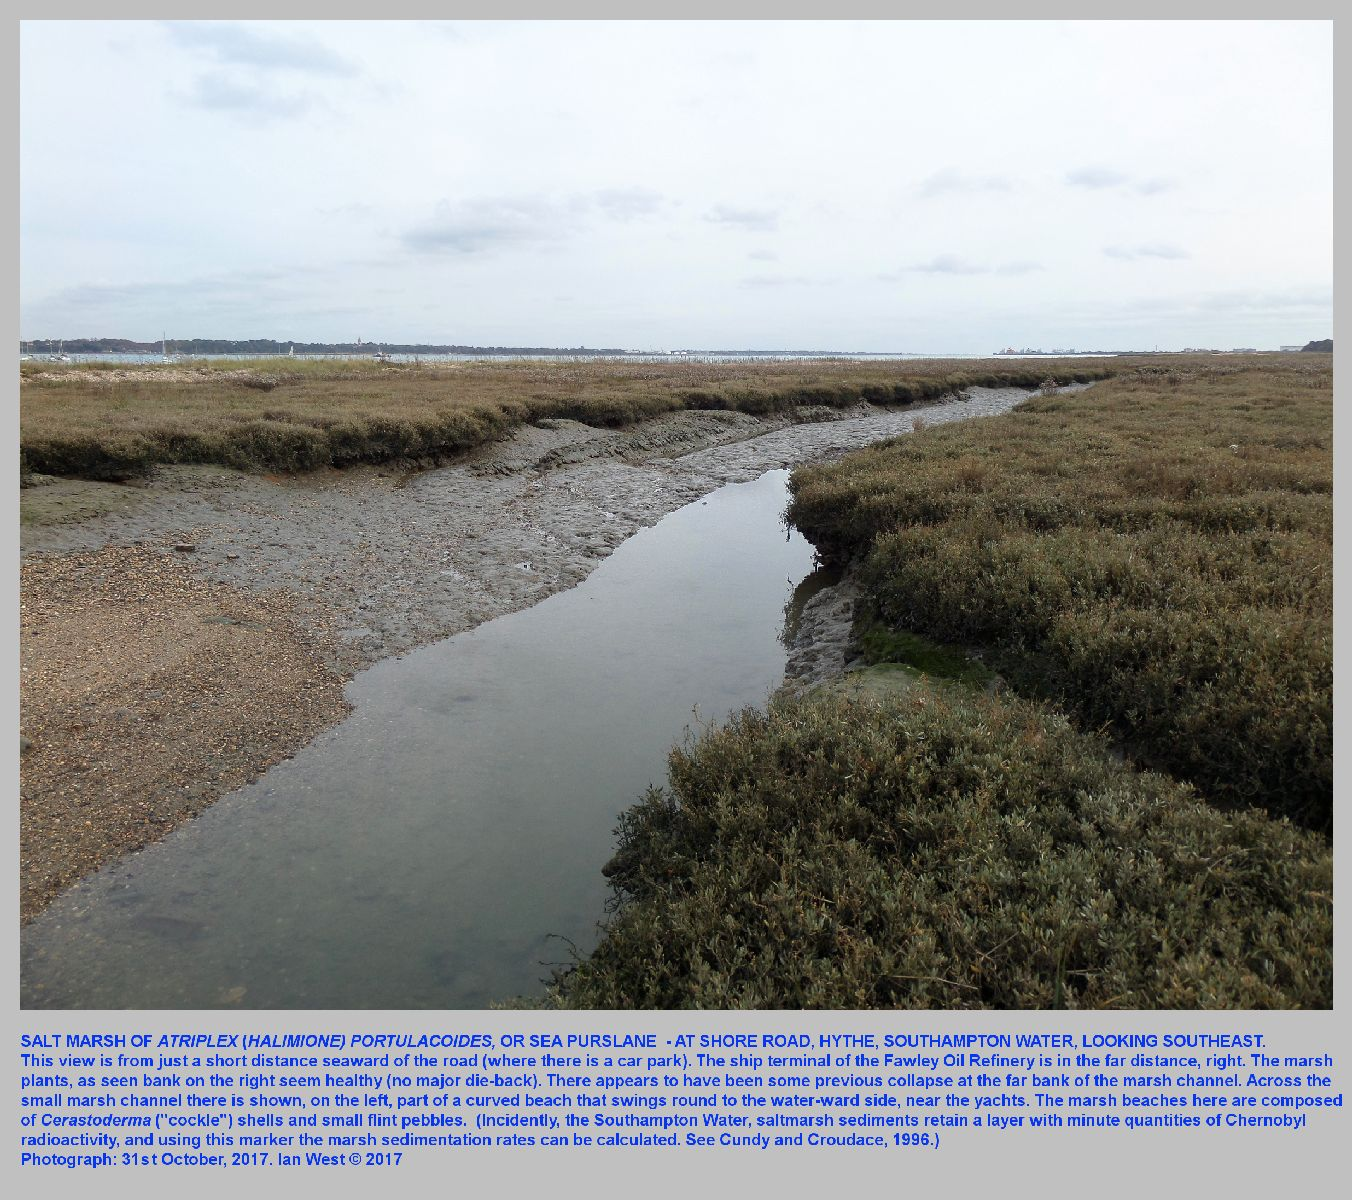 The saltmarsh at Hythe, Hampshire, with sea purslane, and as seen in October, 2017